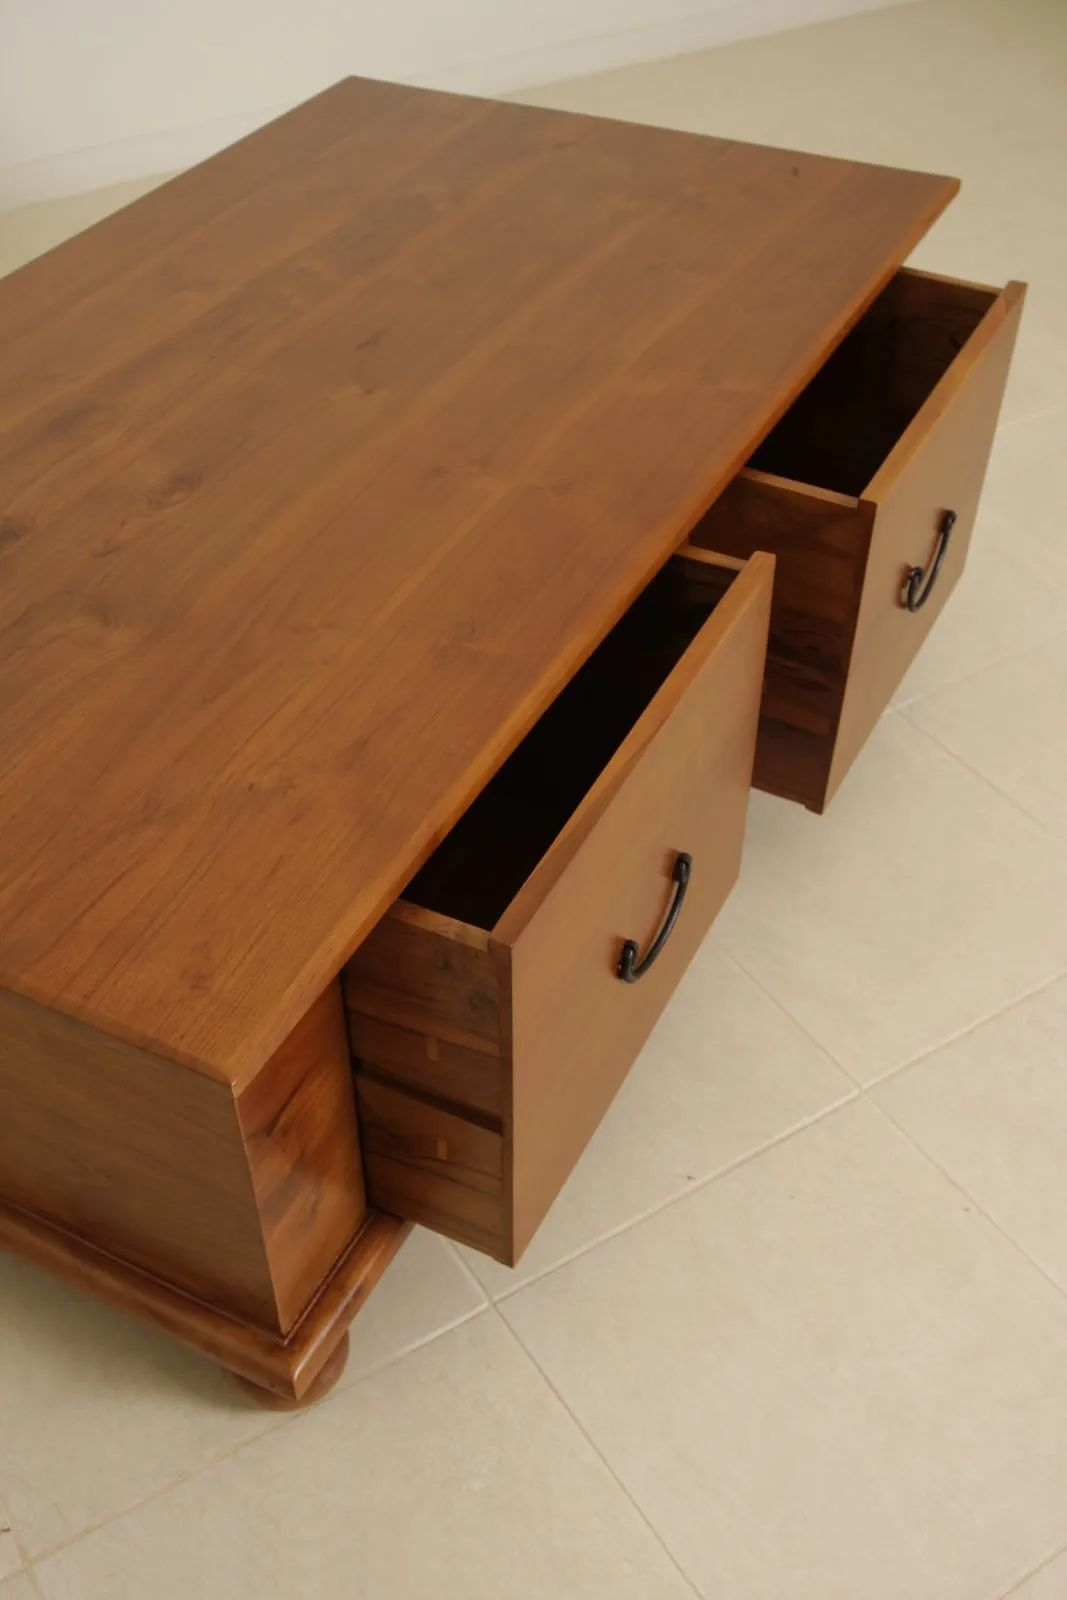 The drawers of Bun feet coffee table pulled out